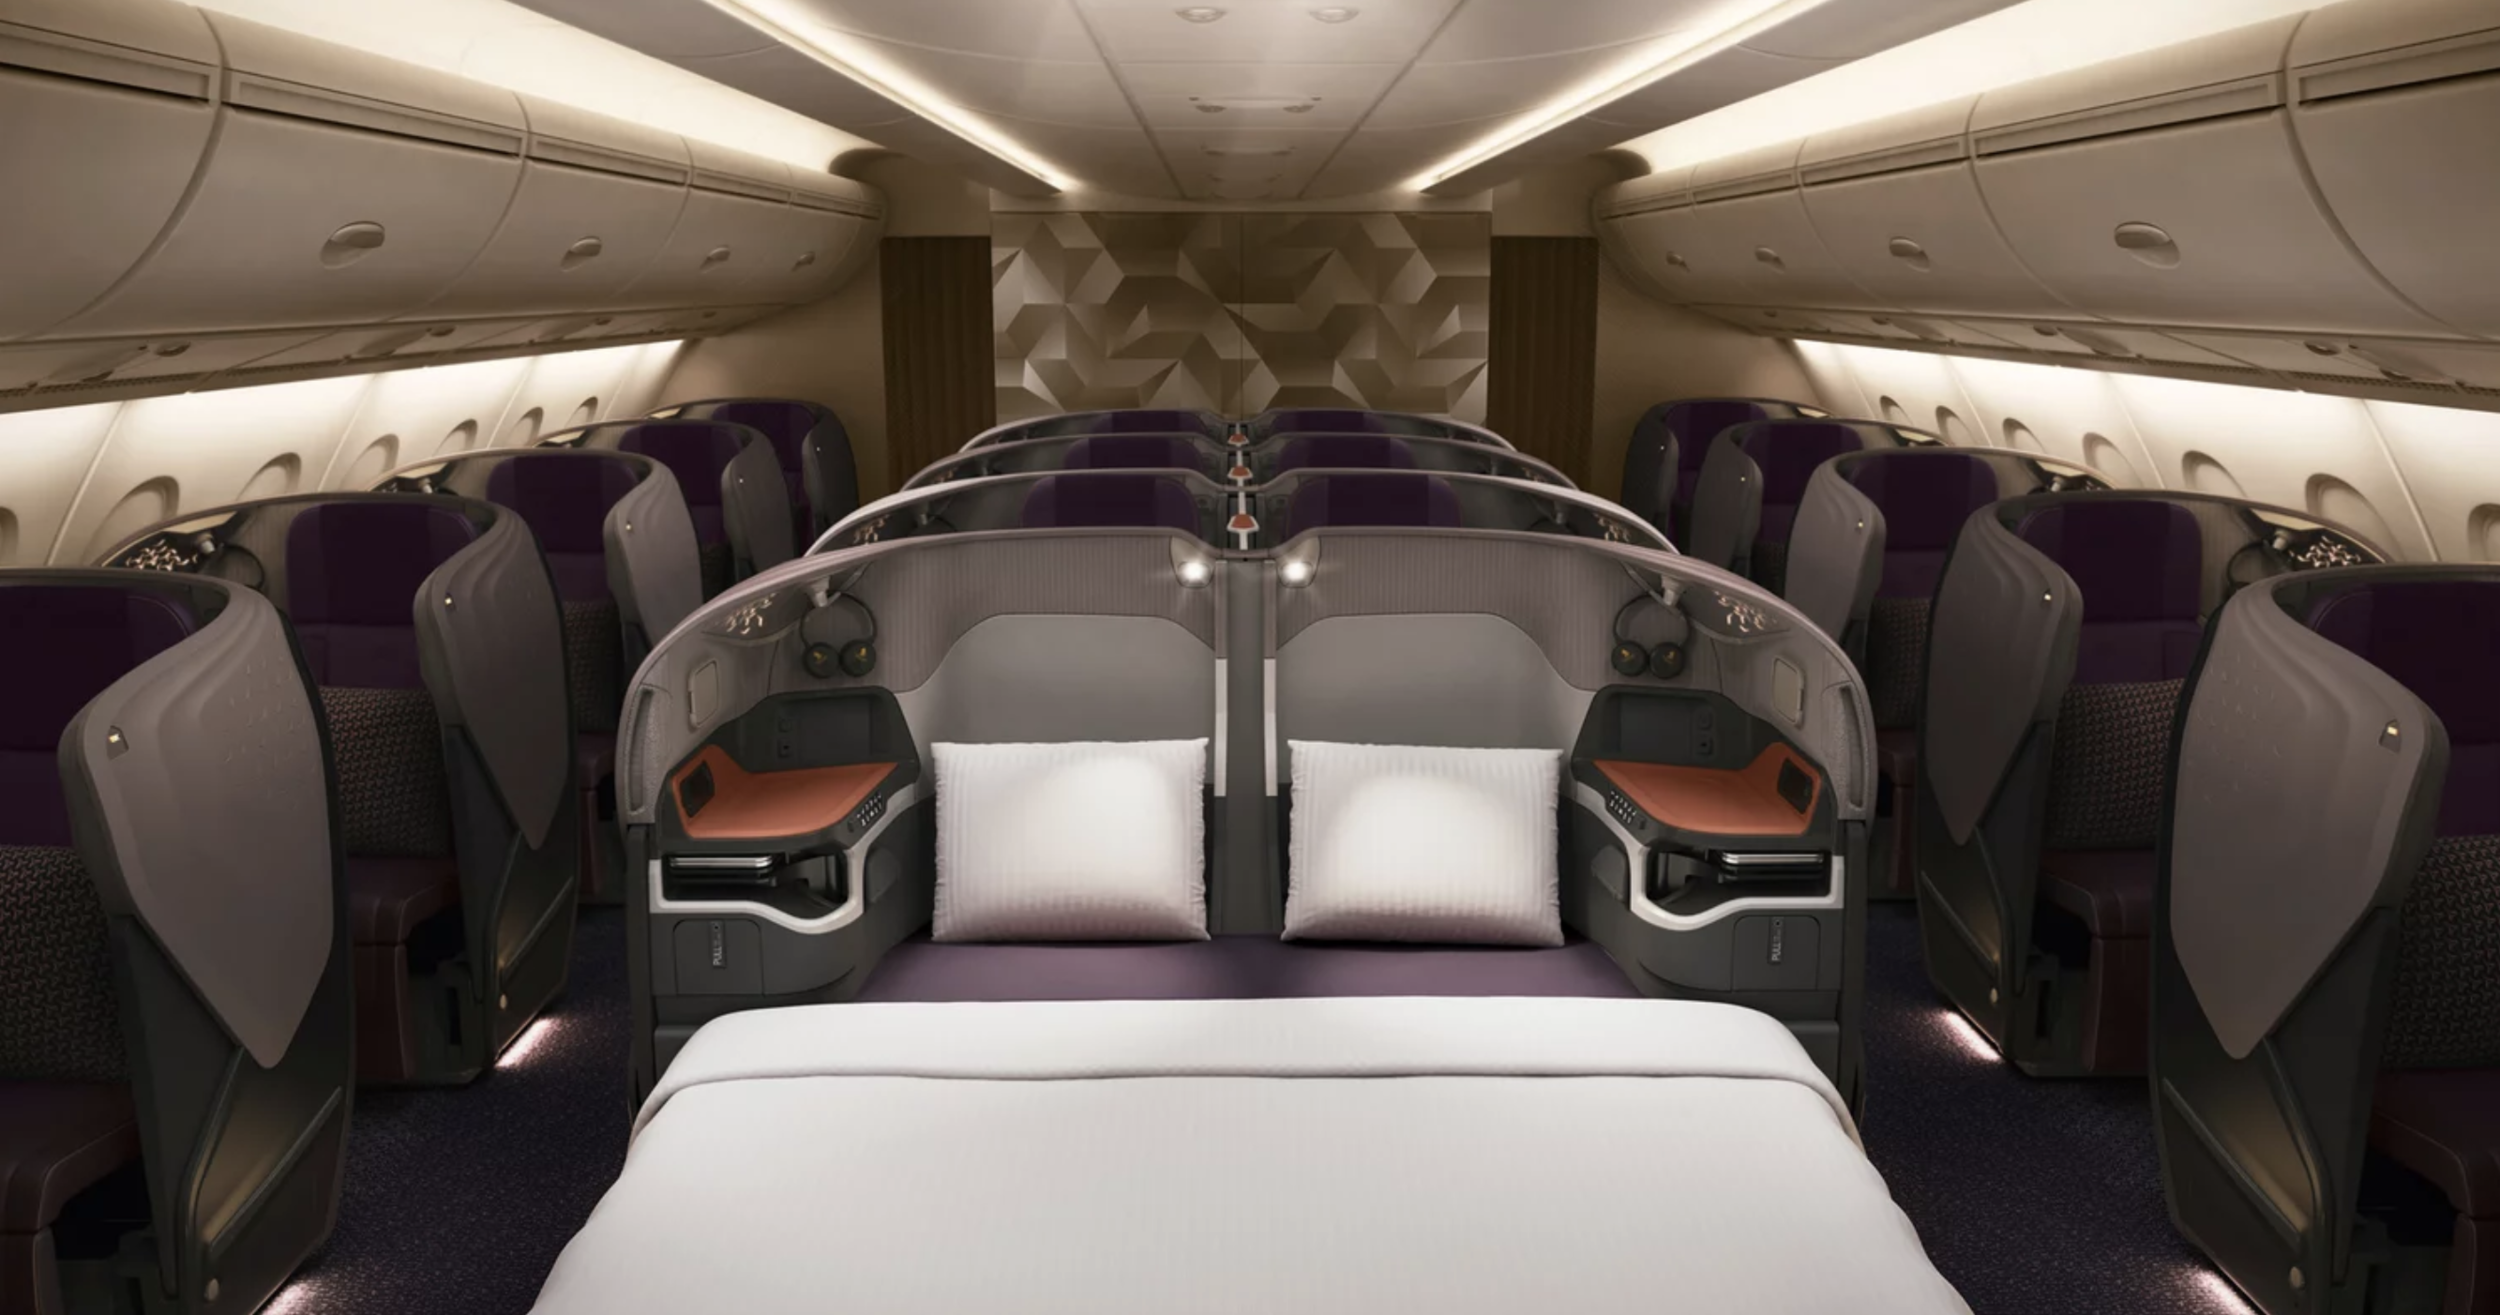 The middle seats directly behind each three bulkhead cabin rows can convert into a double bed.